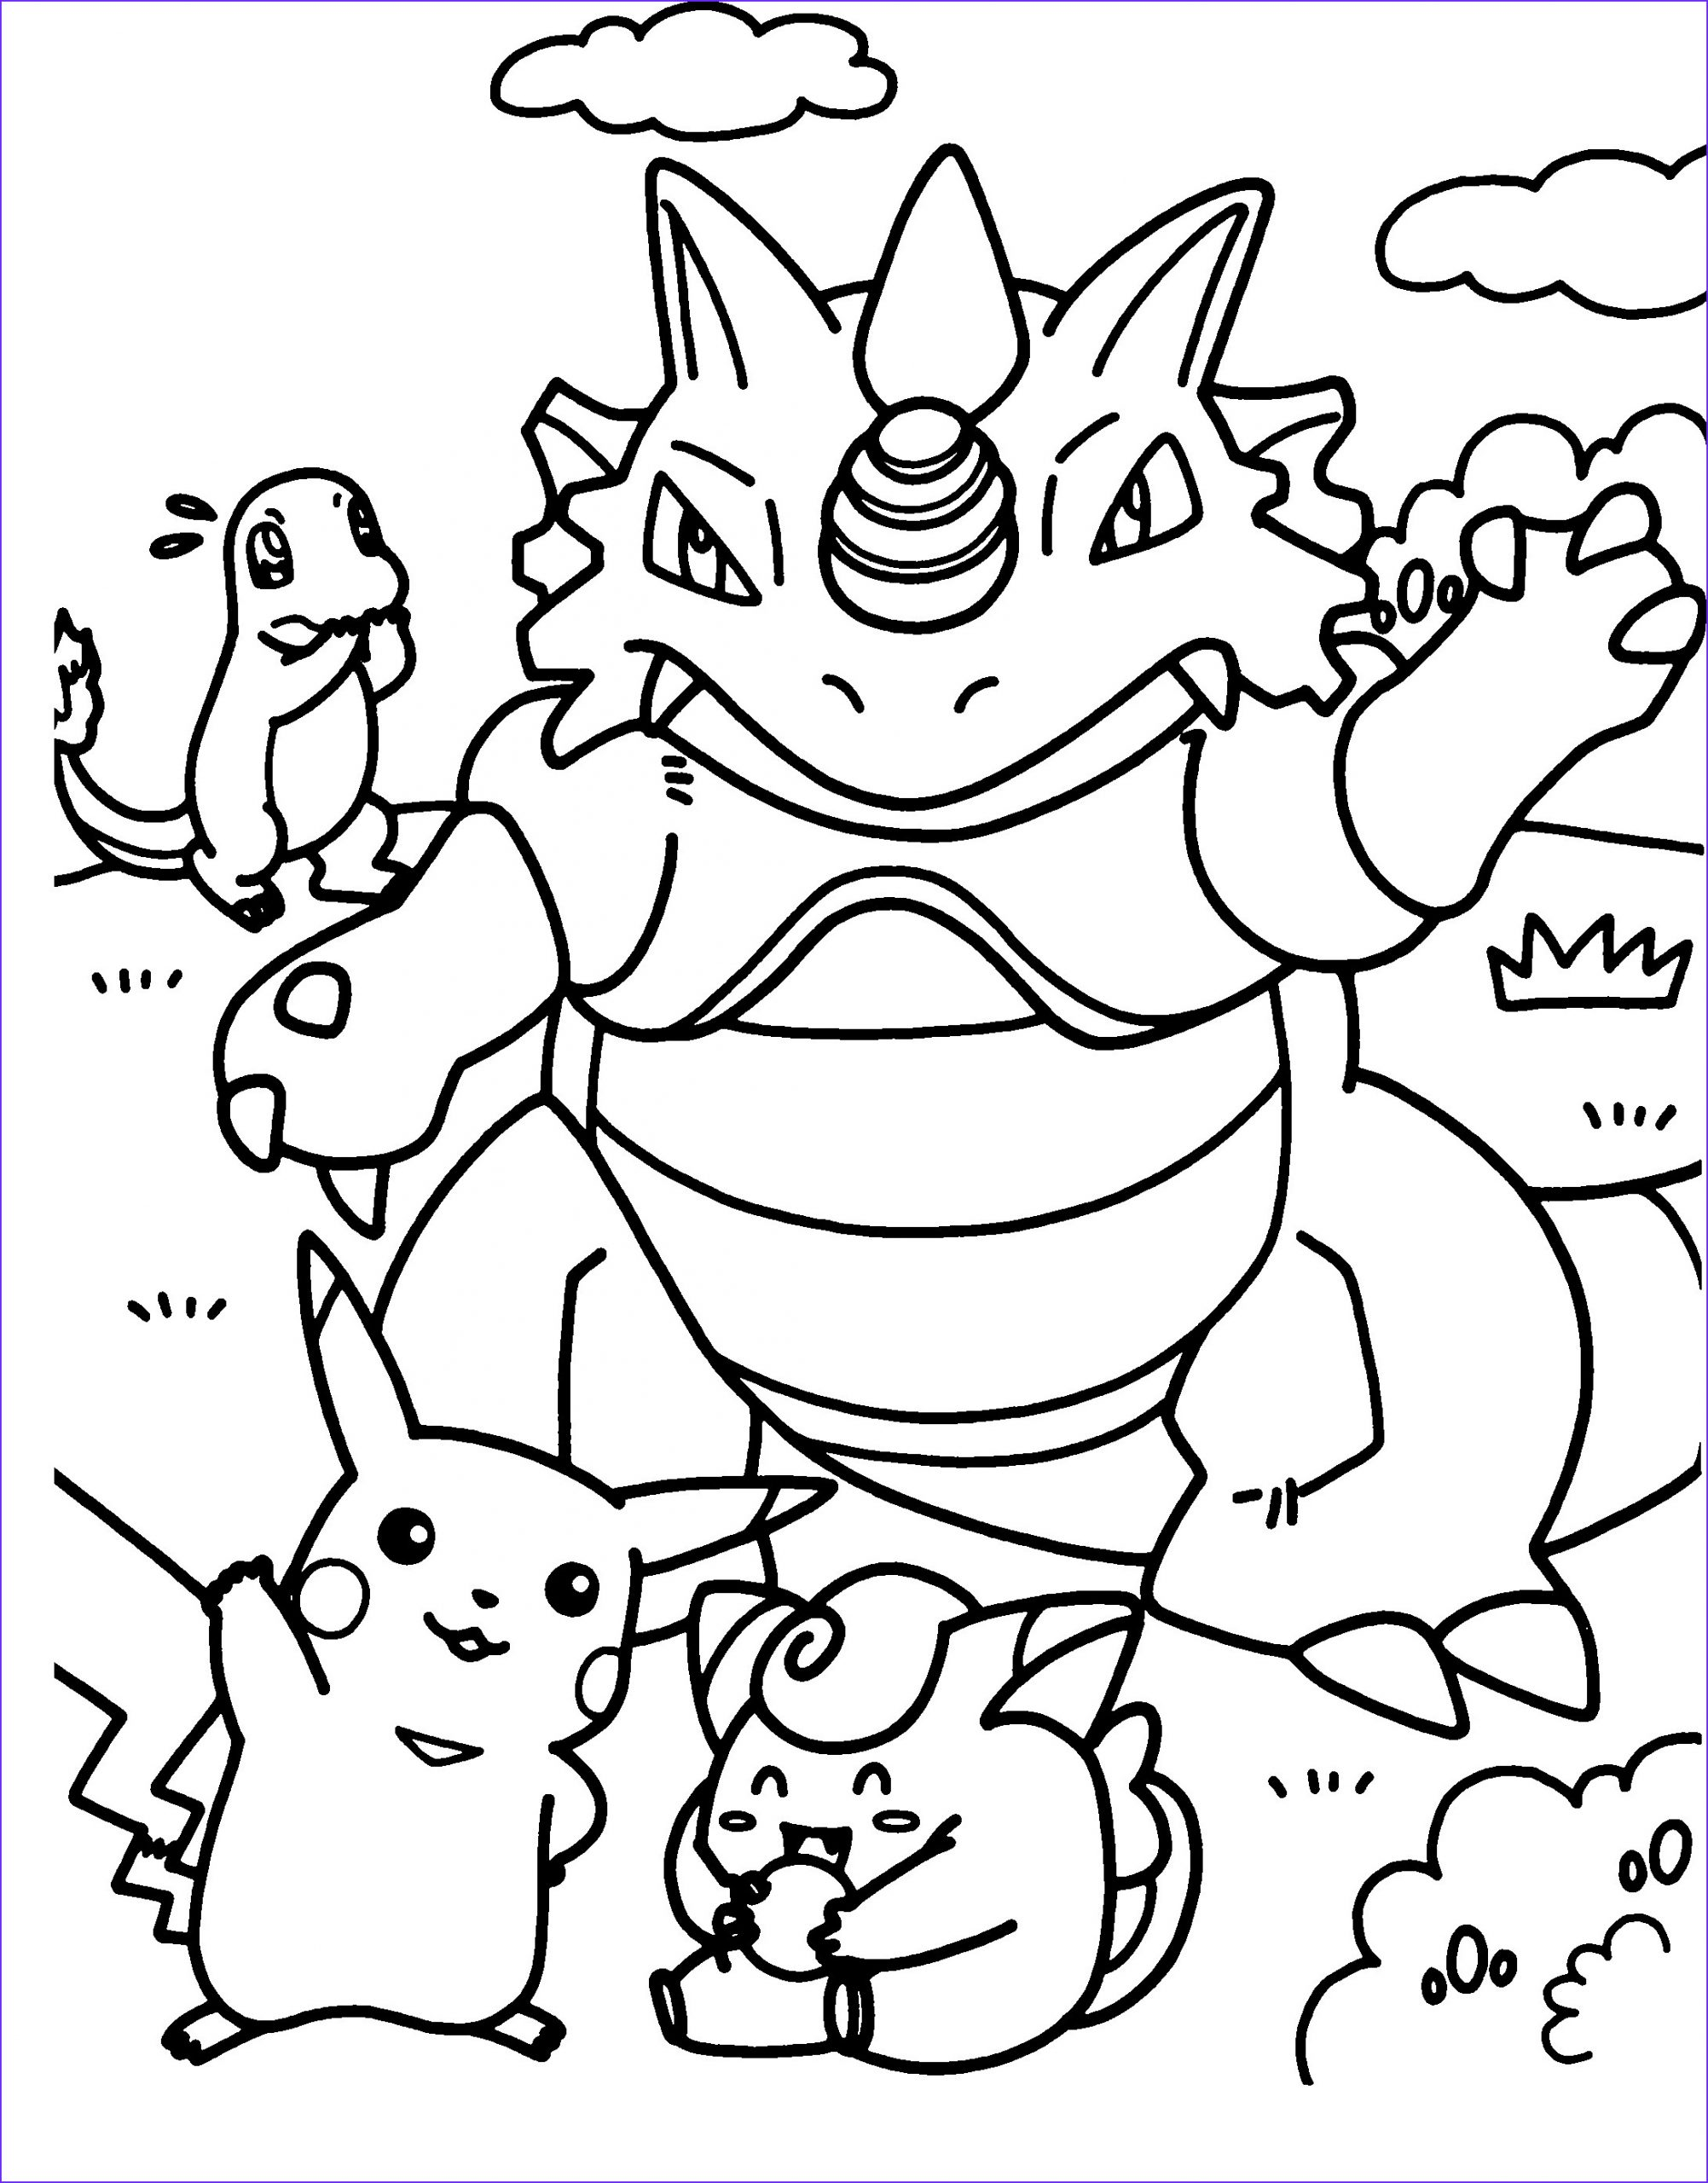 Coloring Page Pokeman Beautiful Images Pokemon Coloring Pages for Kids Printable